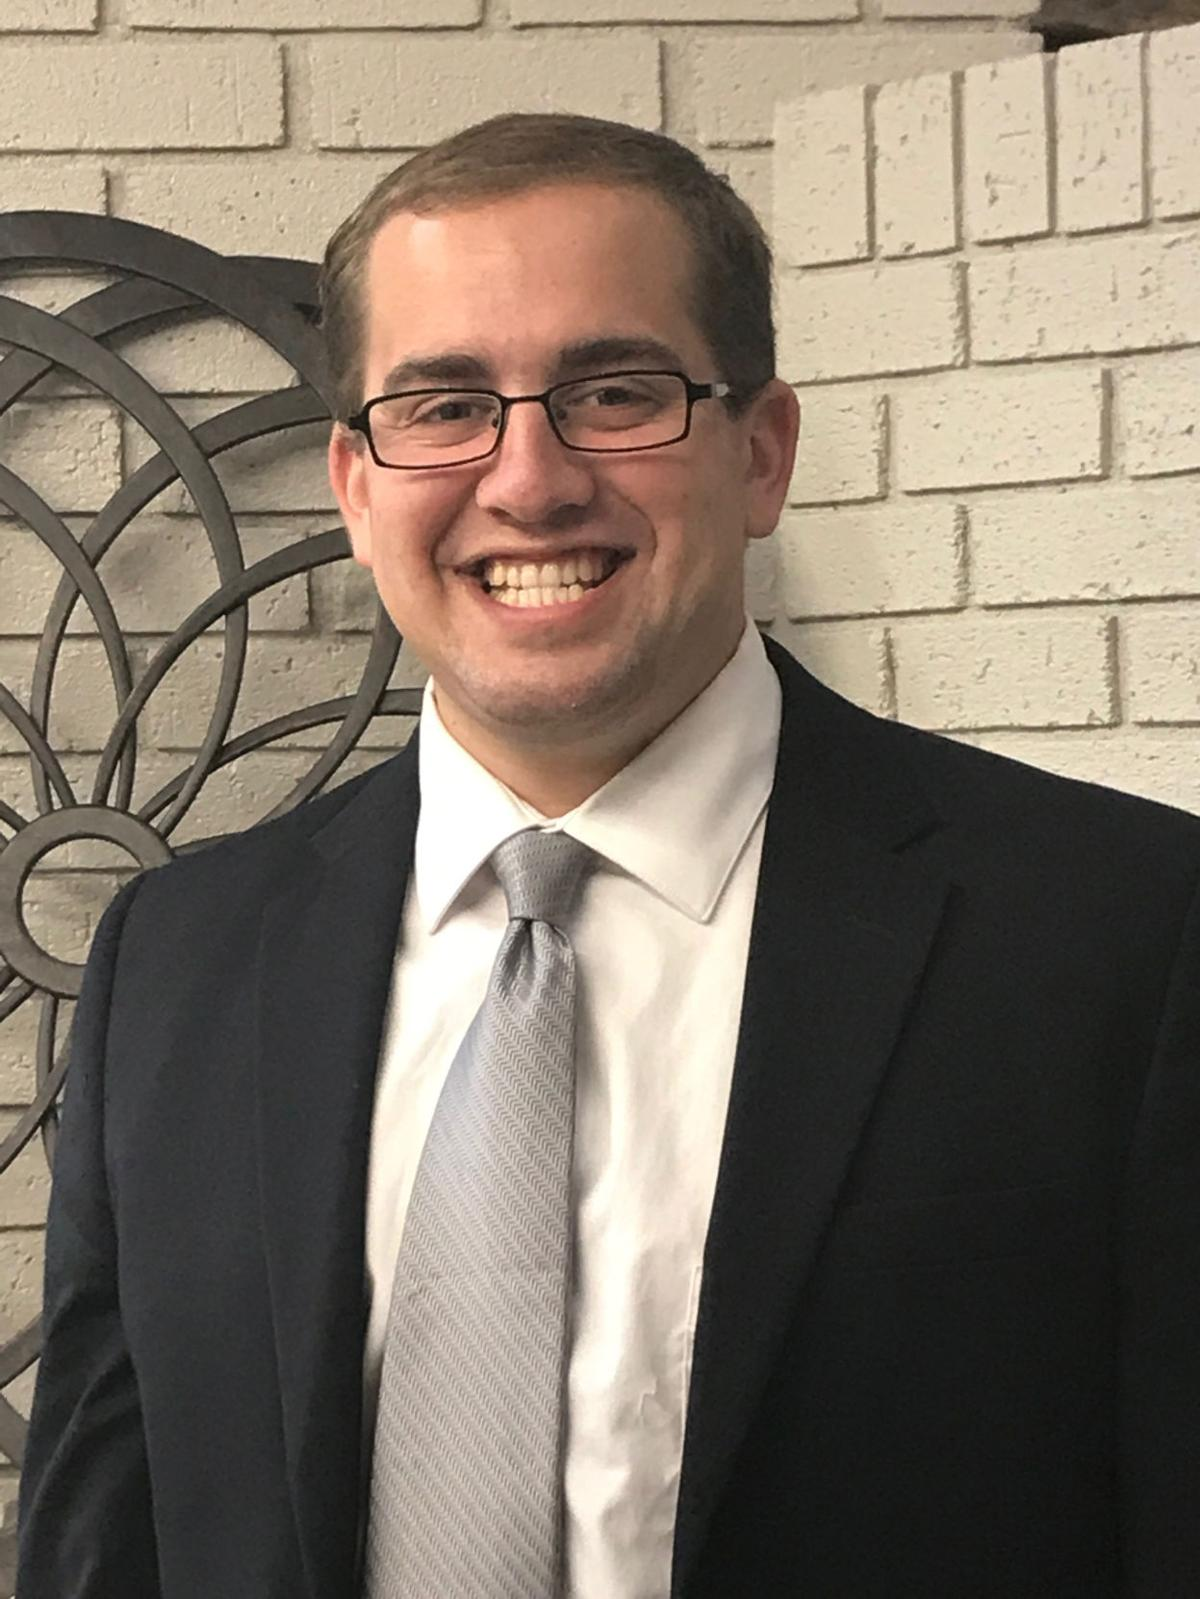 tyler oppman named financial representative with the funk group of northwestern mutual